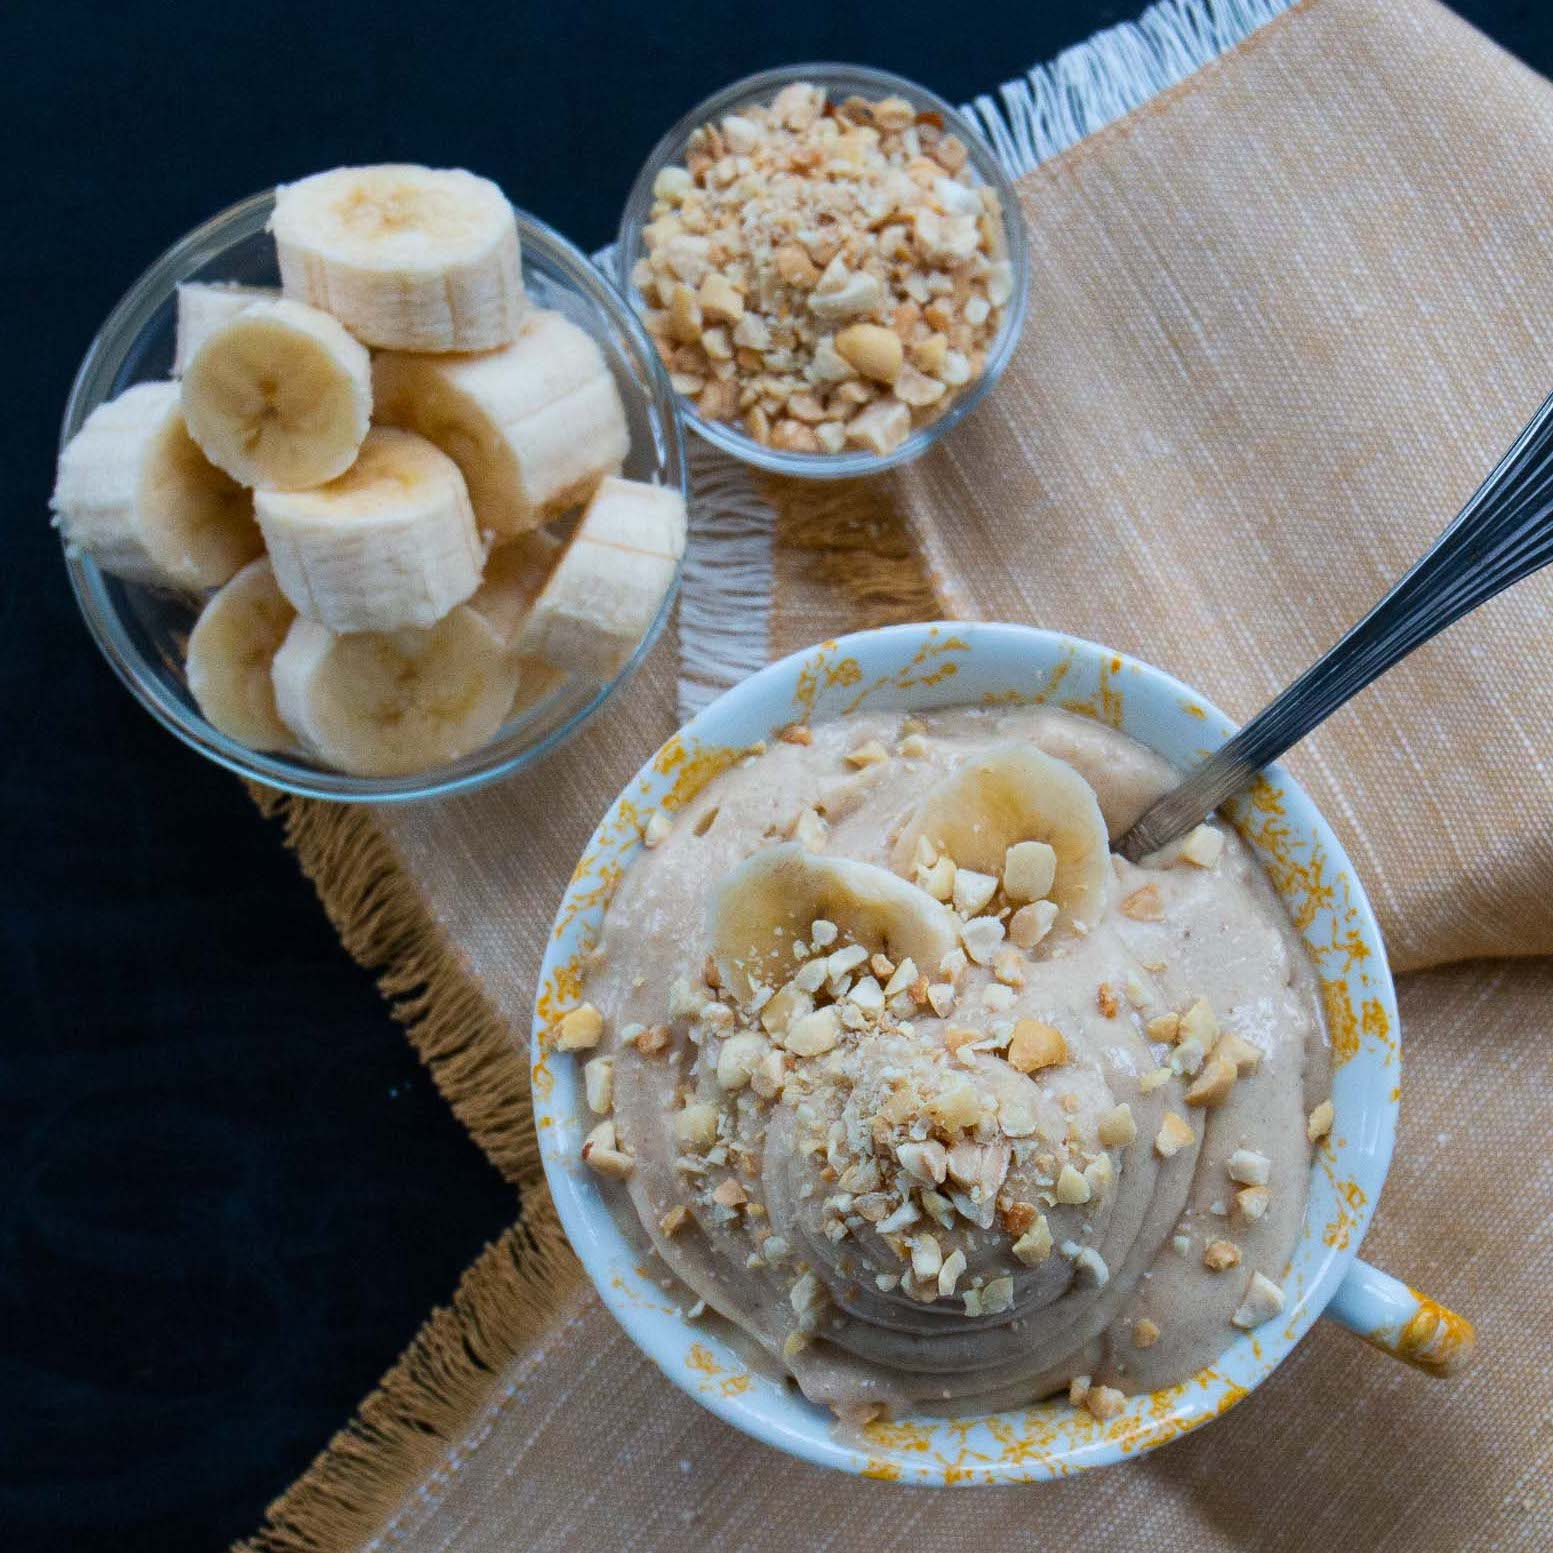 Banana and Peanut Butter 4-Ingredient 'Ice Cream'